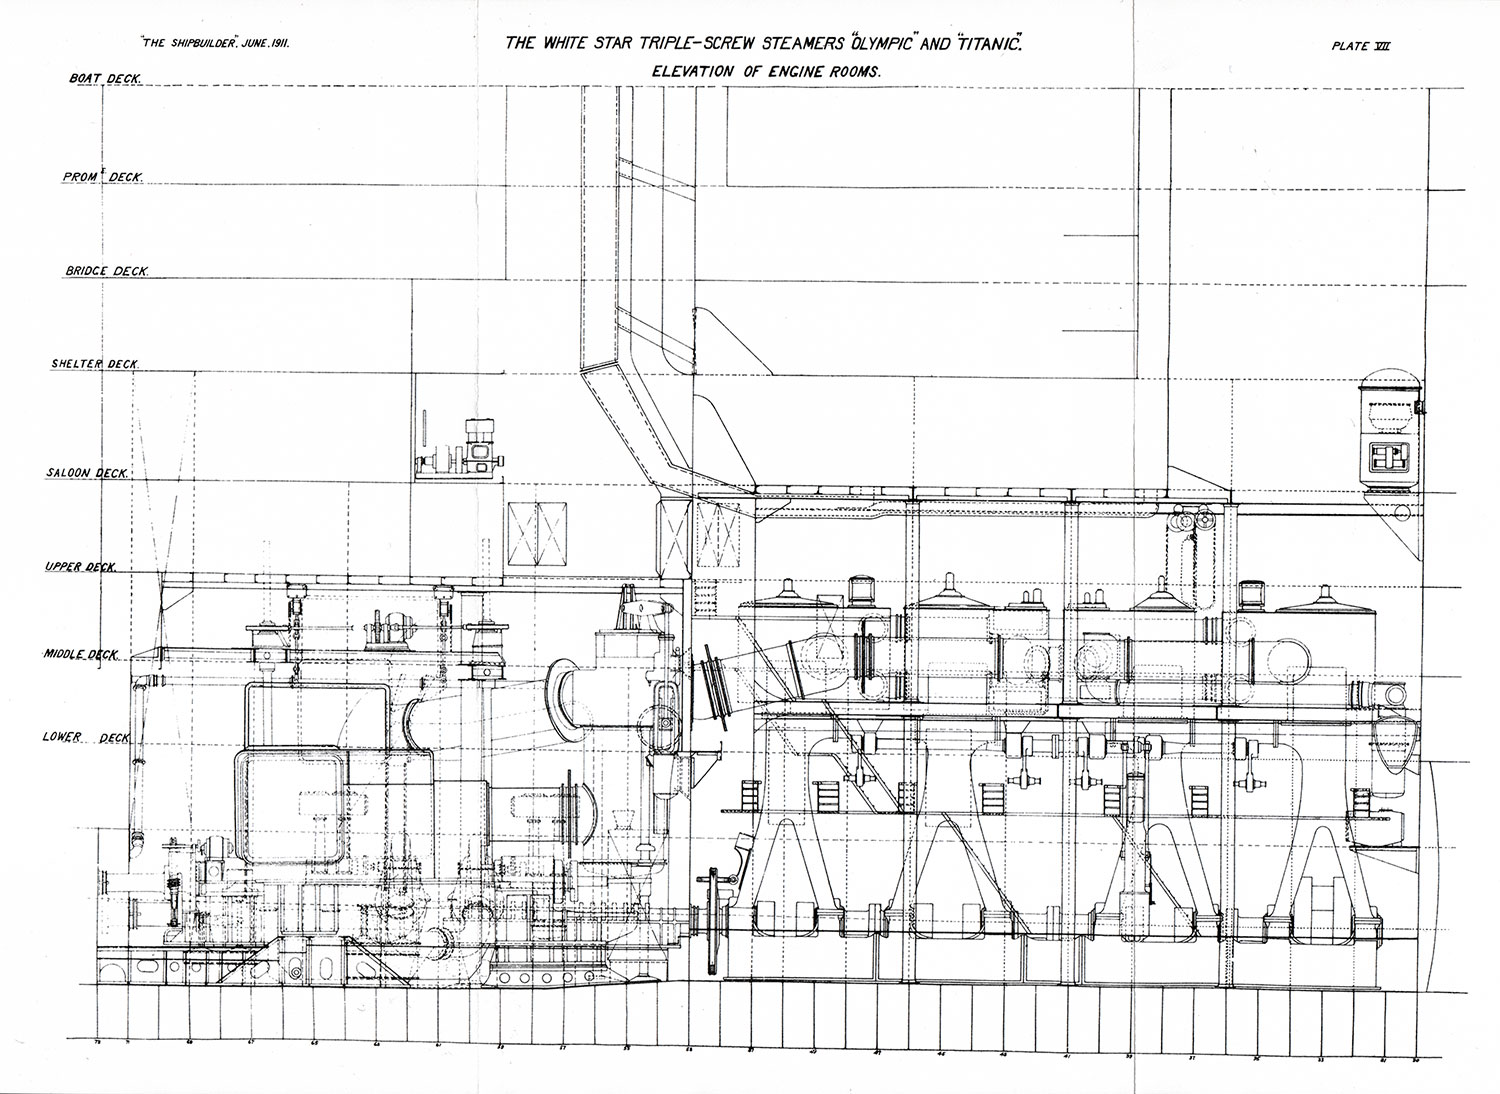 hight resolution of plate 7 elevation of engine rooms